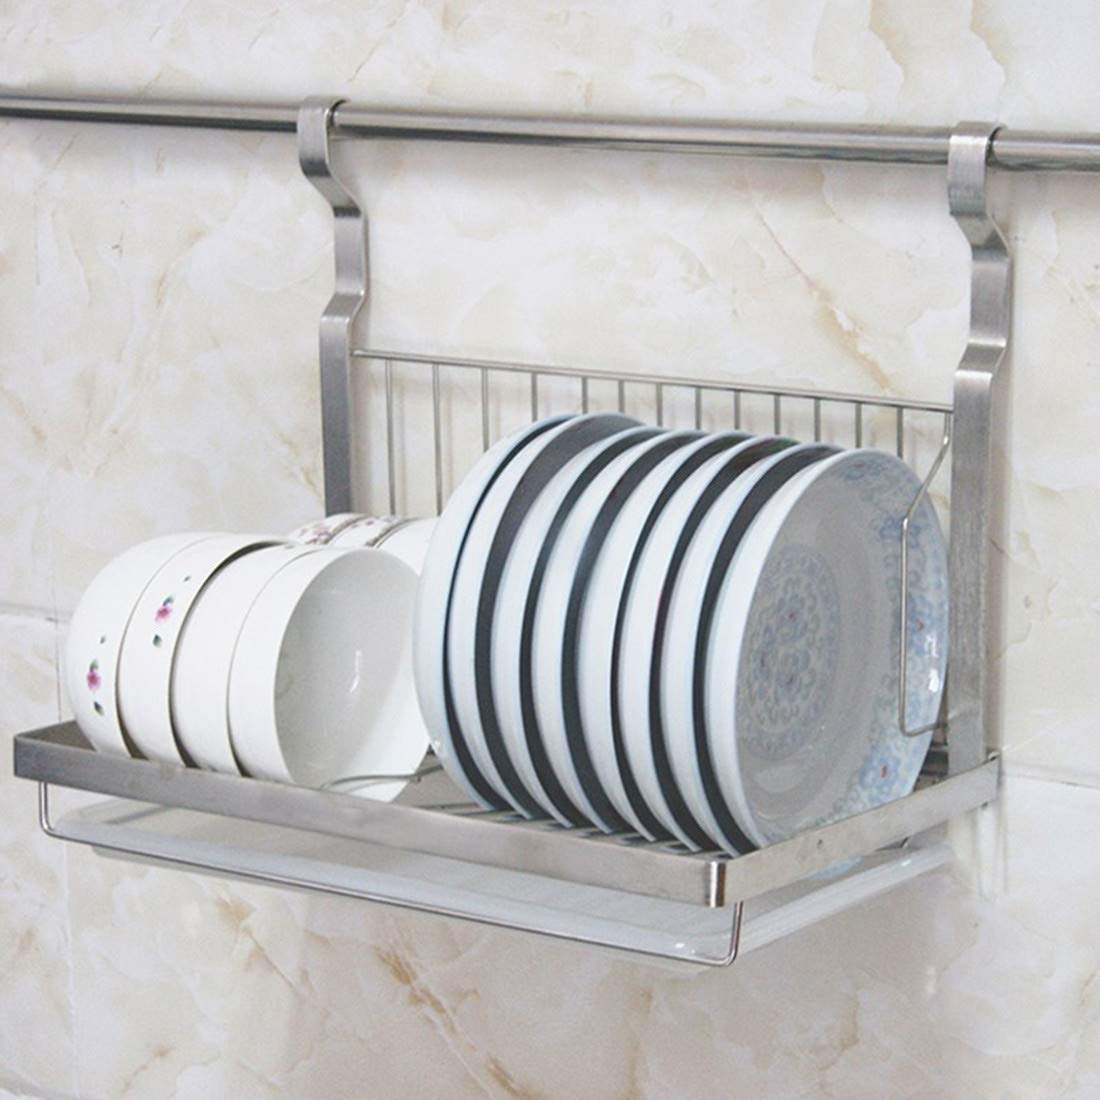 Zuji Foldable Dish Drainer Wall Mounted Dish Drying Rack With Drip Tray Kitchen Plates Organizer Stoarge Shelf In Buy Online In Cayman Islands At Cayman Desertcart Com Productid 169164404 Plates and pan lids benefit from being stored on. zuji foldable dish drainer wall mounted